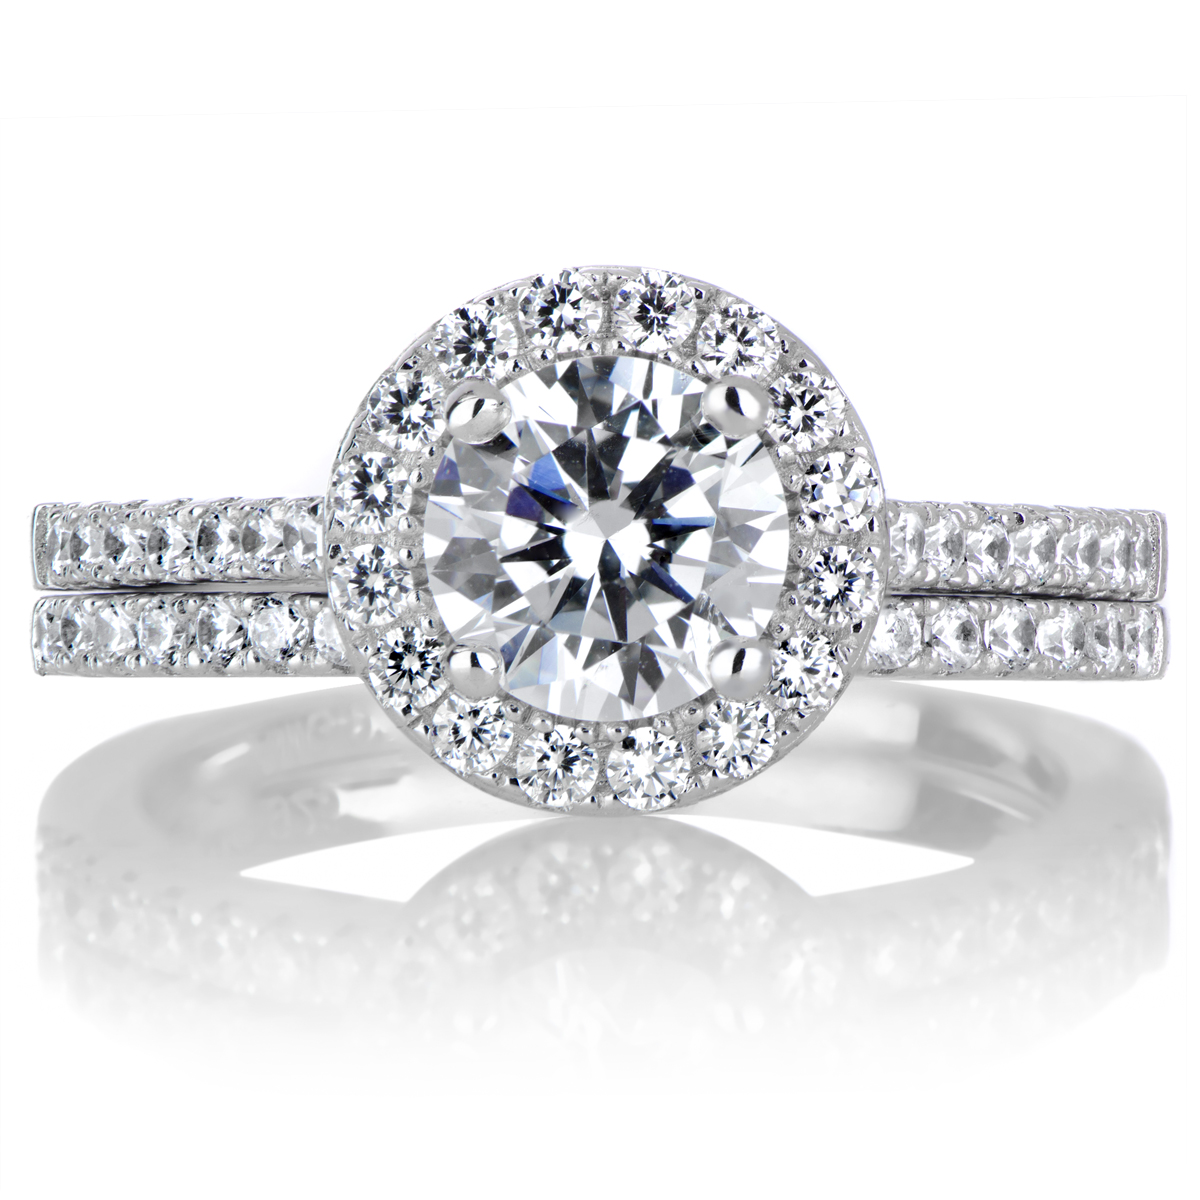 tereza-s-1ct-round-cut-cz-with-halo-wedding-ring-set-110.jpg